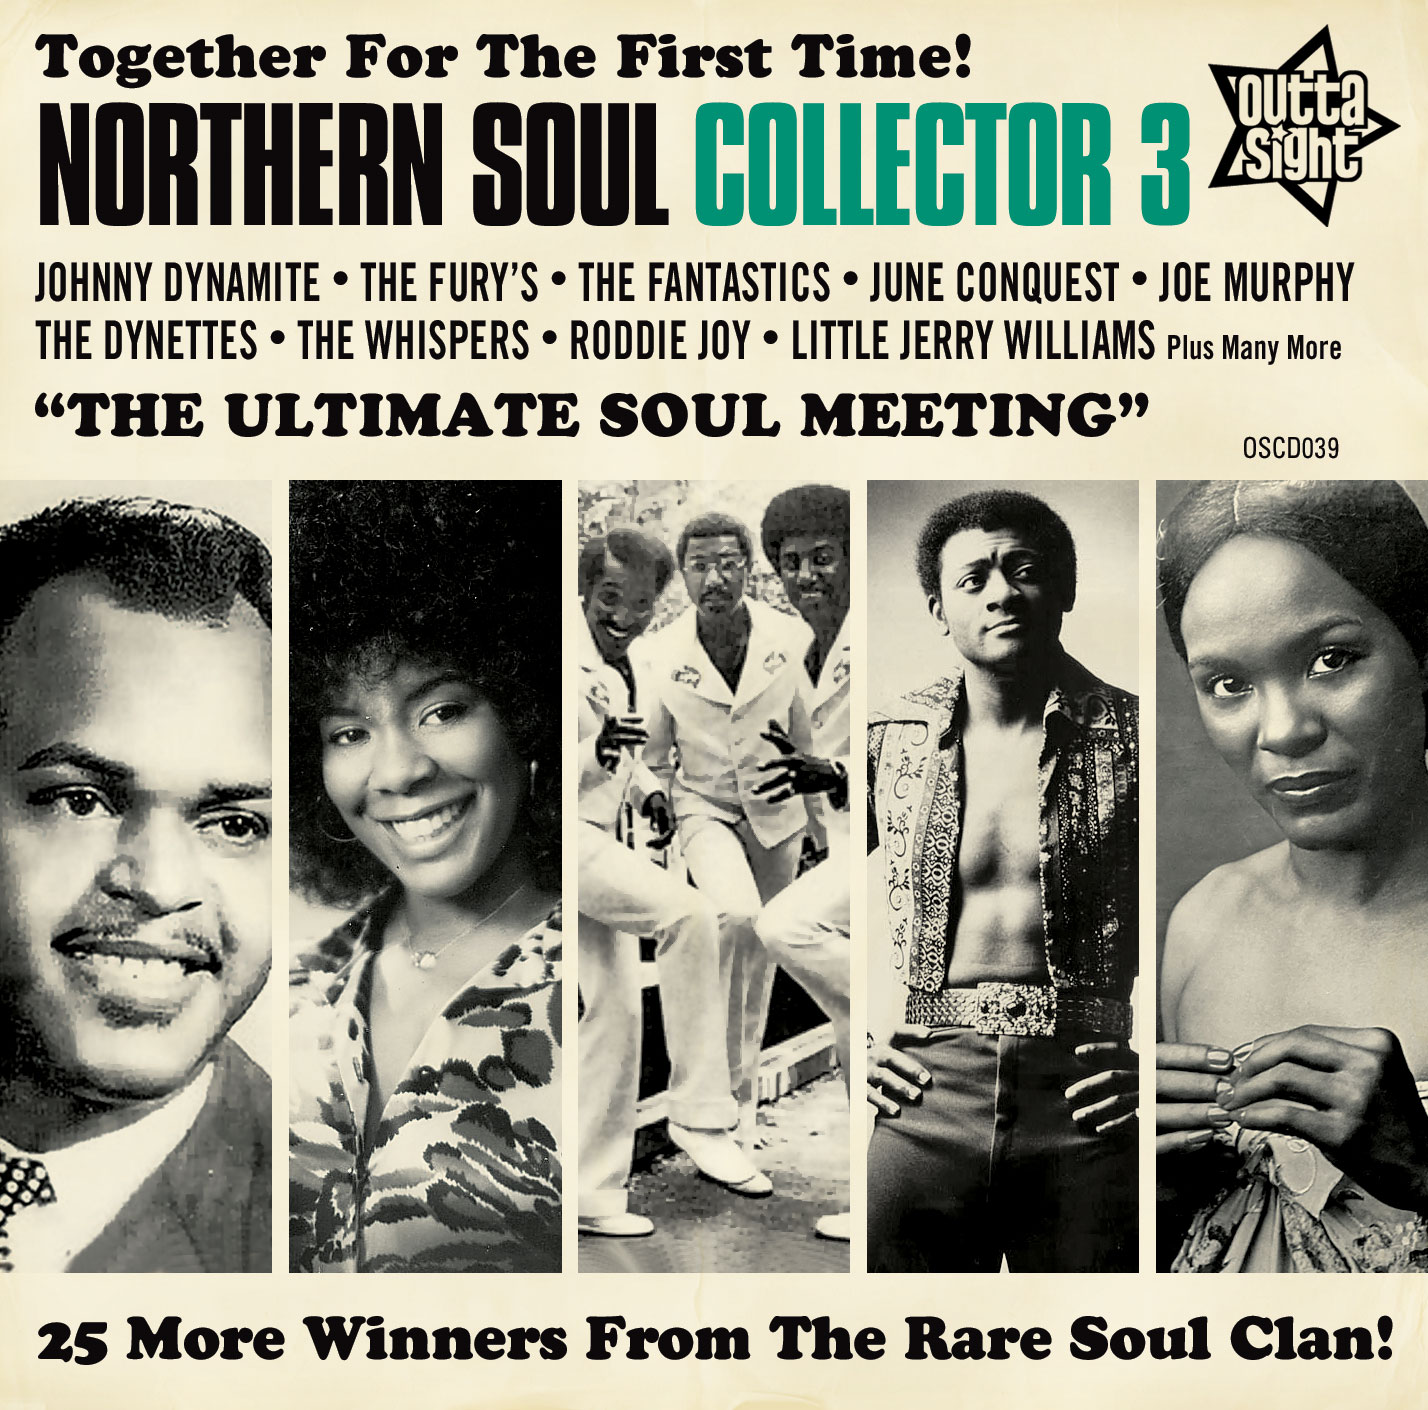 Various/NORTHERN SOUL COLLECTOR 3 CD